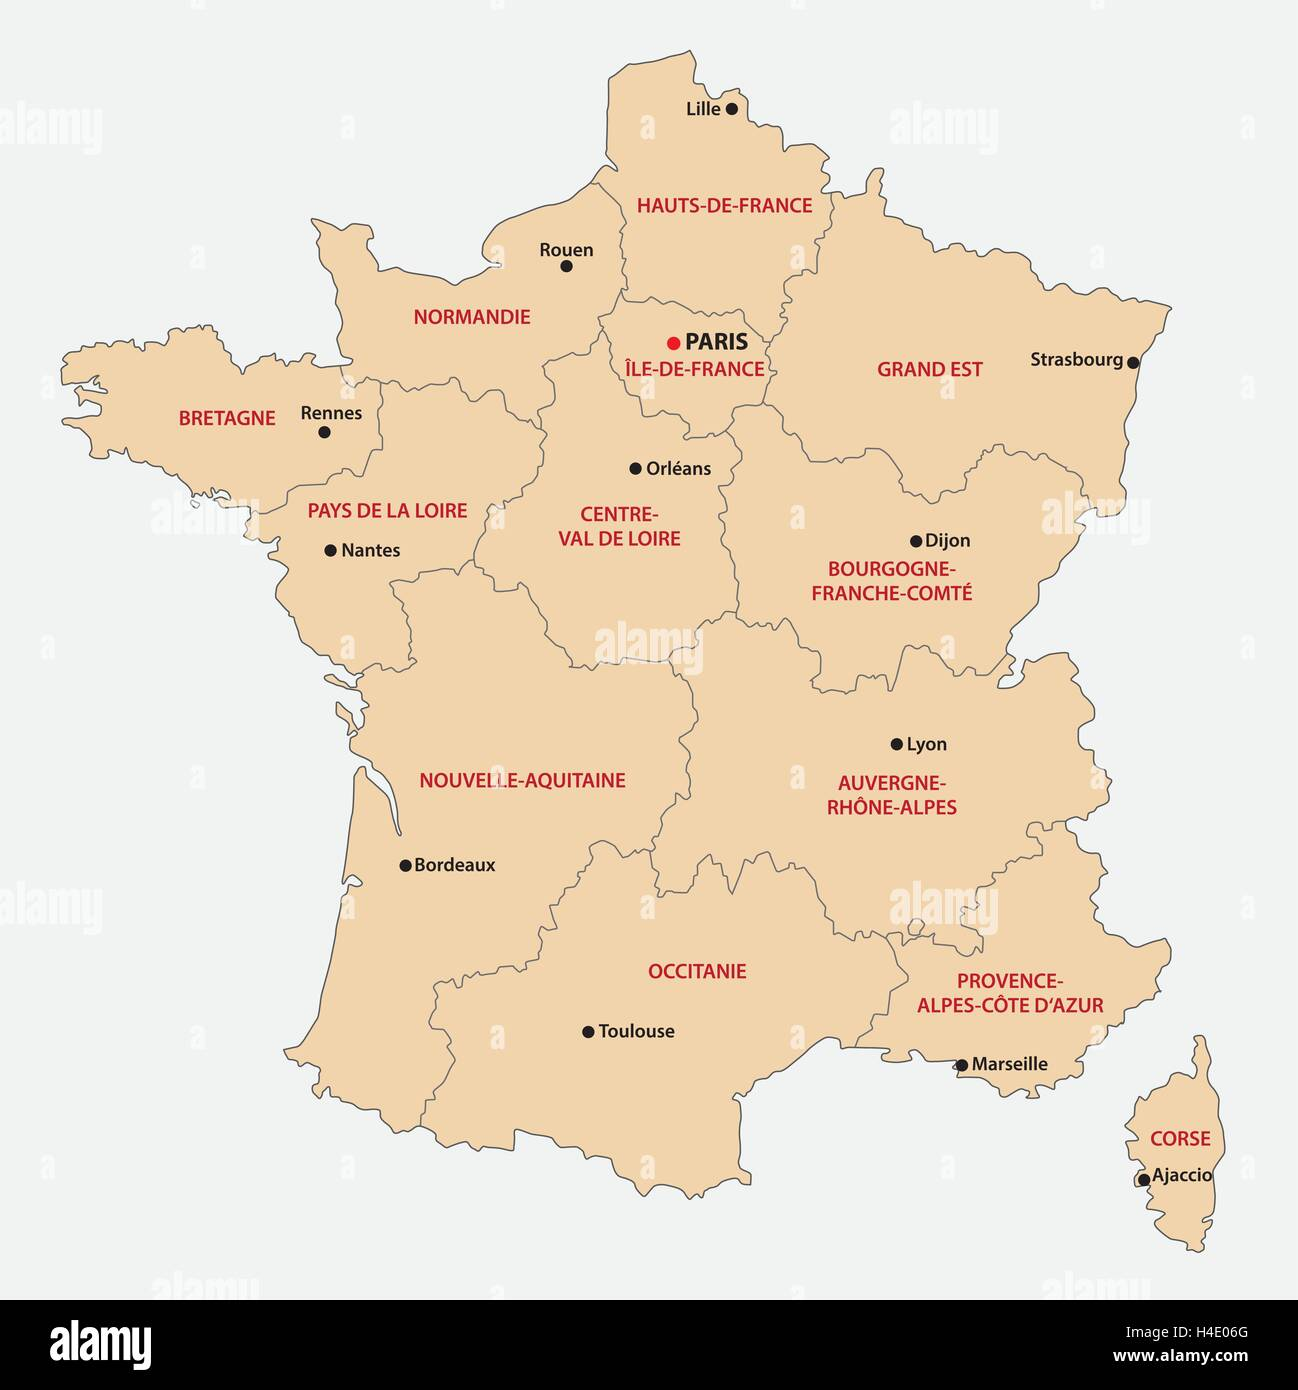 France French Regions Map Stock Photos & France French Regions Map ...